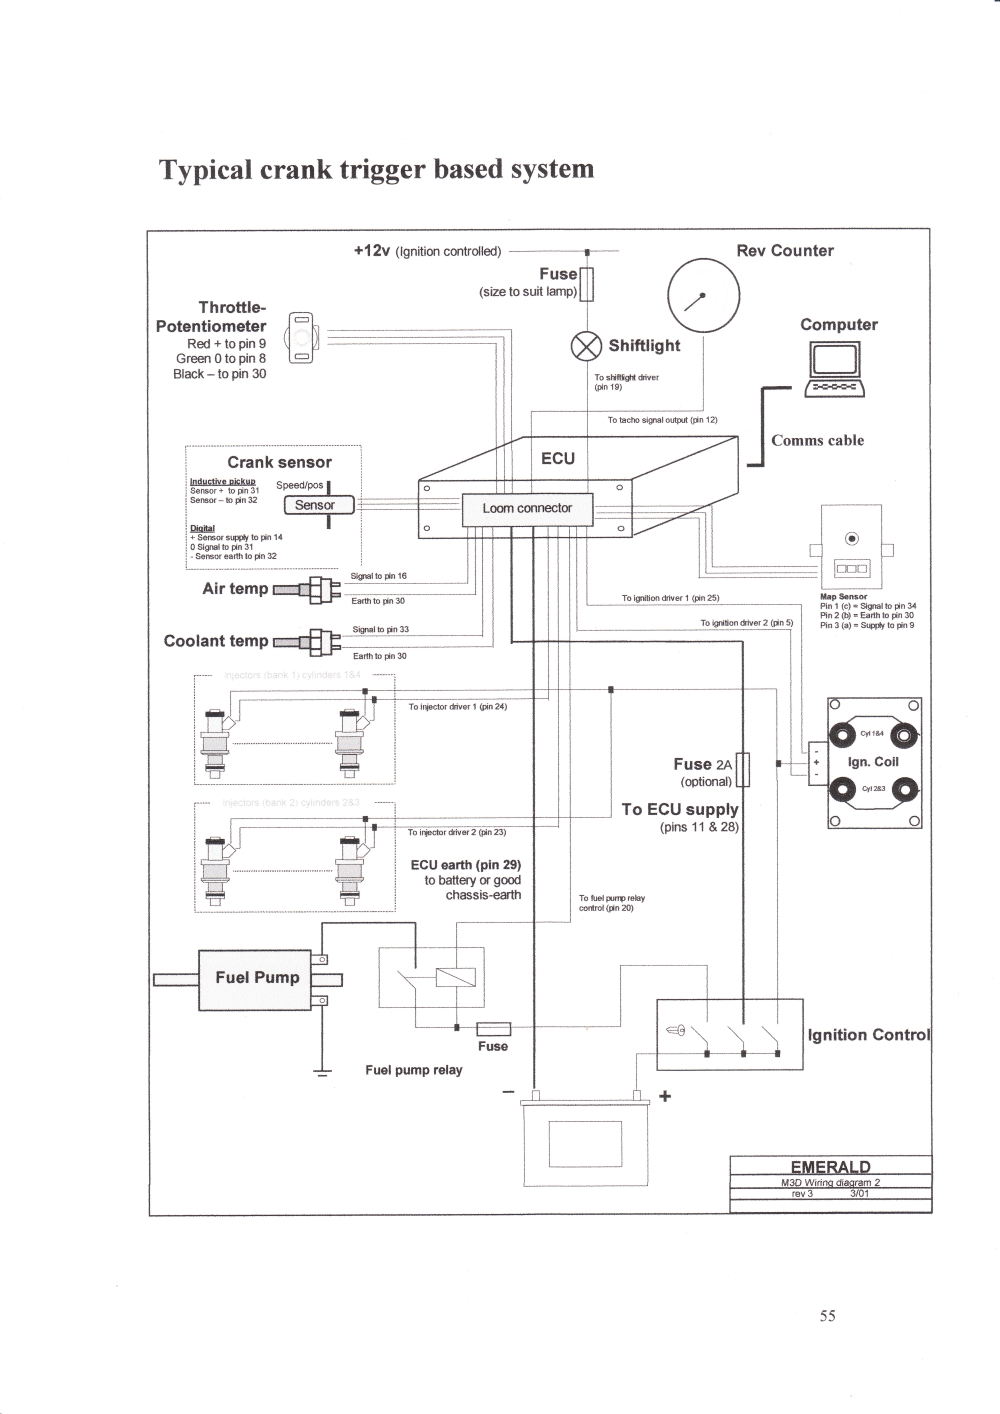 201203022025639669ECU wiring emerald k6 wiring diagram electrical wiring diagrams \u2022 wiring Residential Electrical Wiring Diagrams at cos-gaming.co